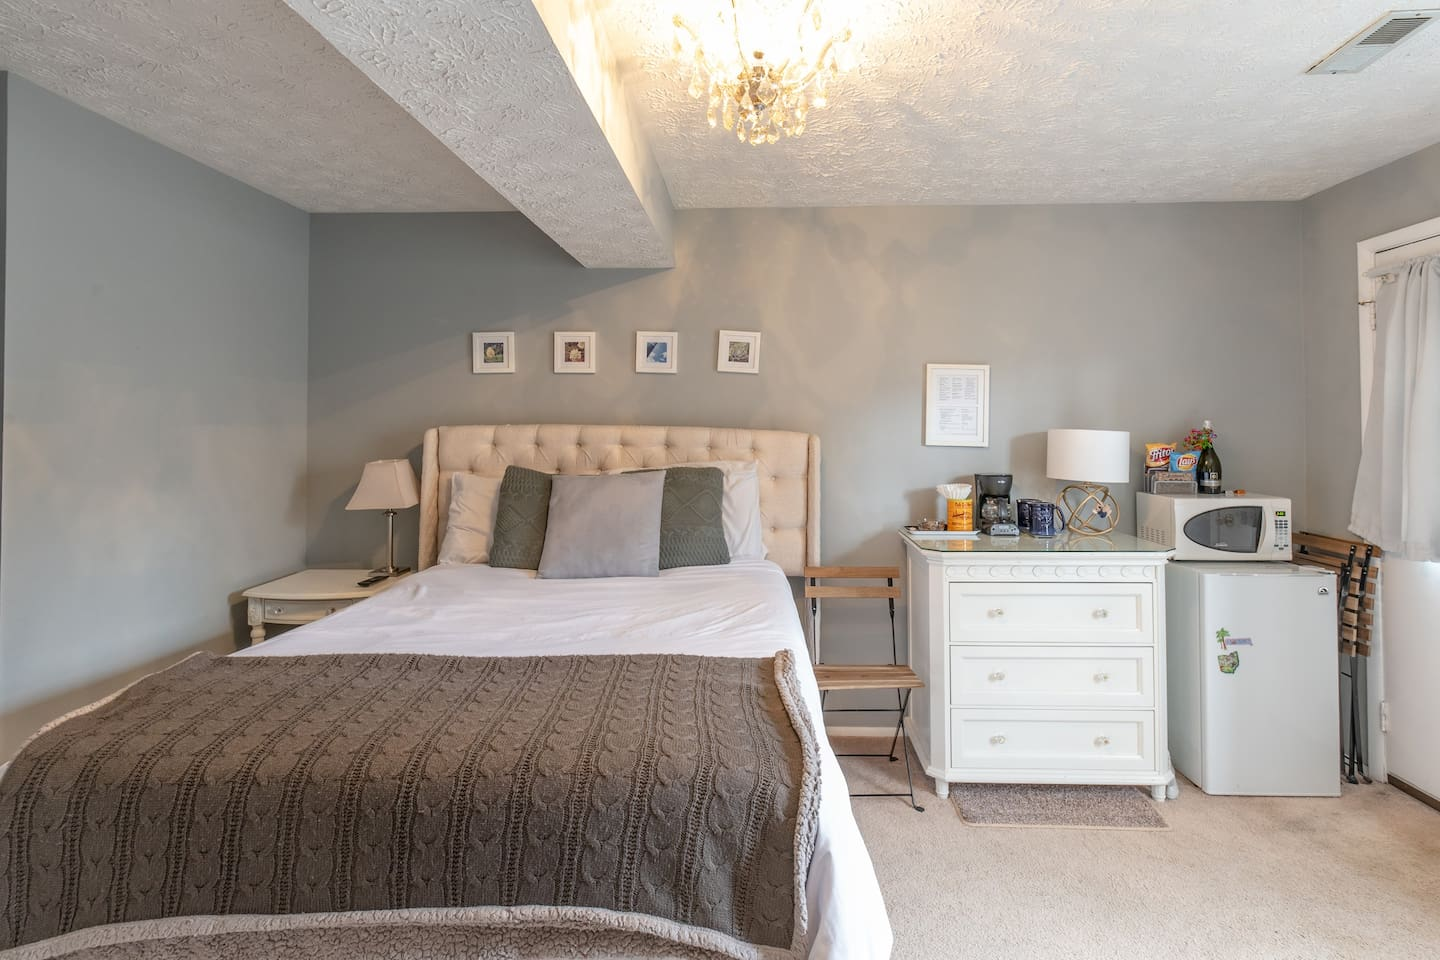 Private bedroom with 1080p HDTV, coffee maker, memory foam bed, snacks, microwave, fridge, wine, water, and much more!  Helpful tips and information are in the white picture frame above the coffee maker.